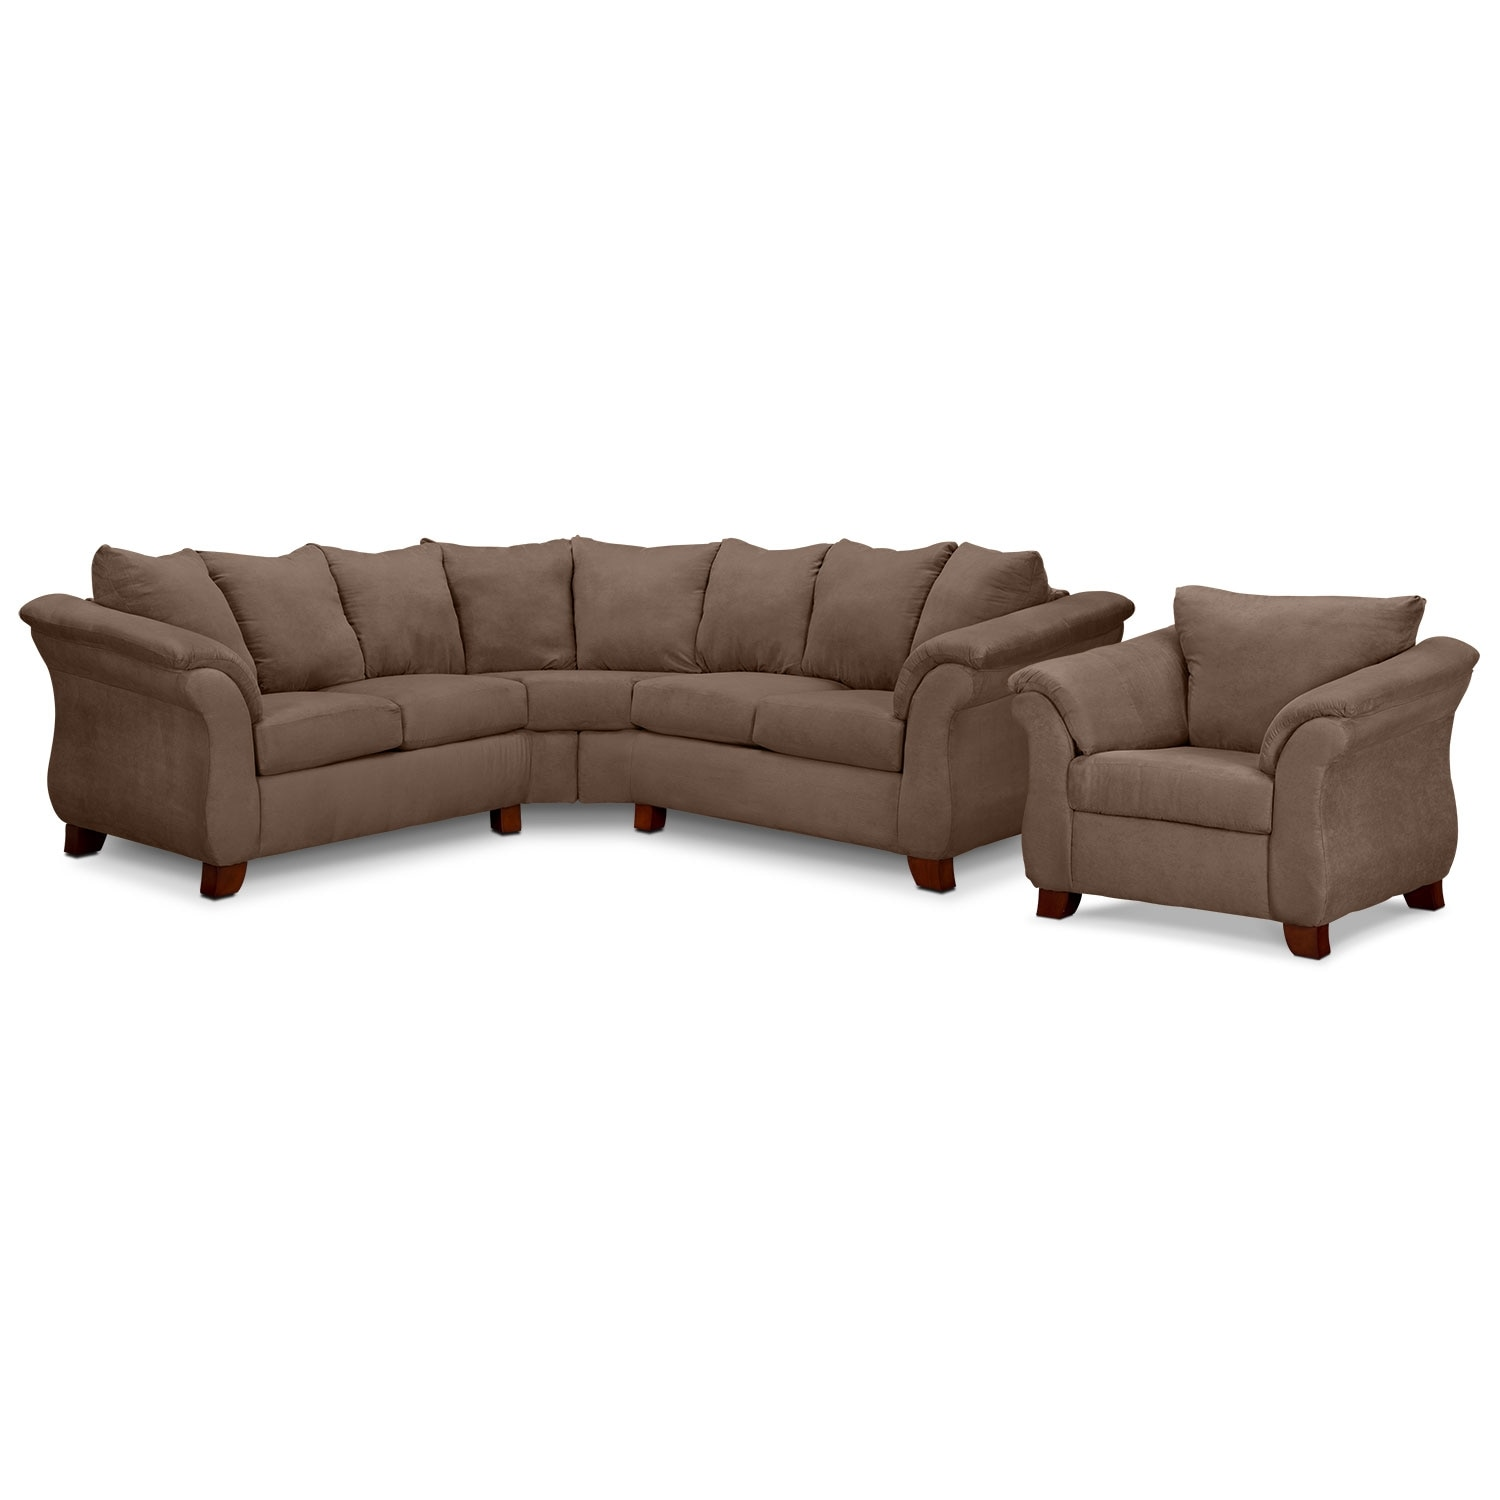 Adrian 2 Piece Sectional And Chair Set Taupe American Signature Furniture